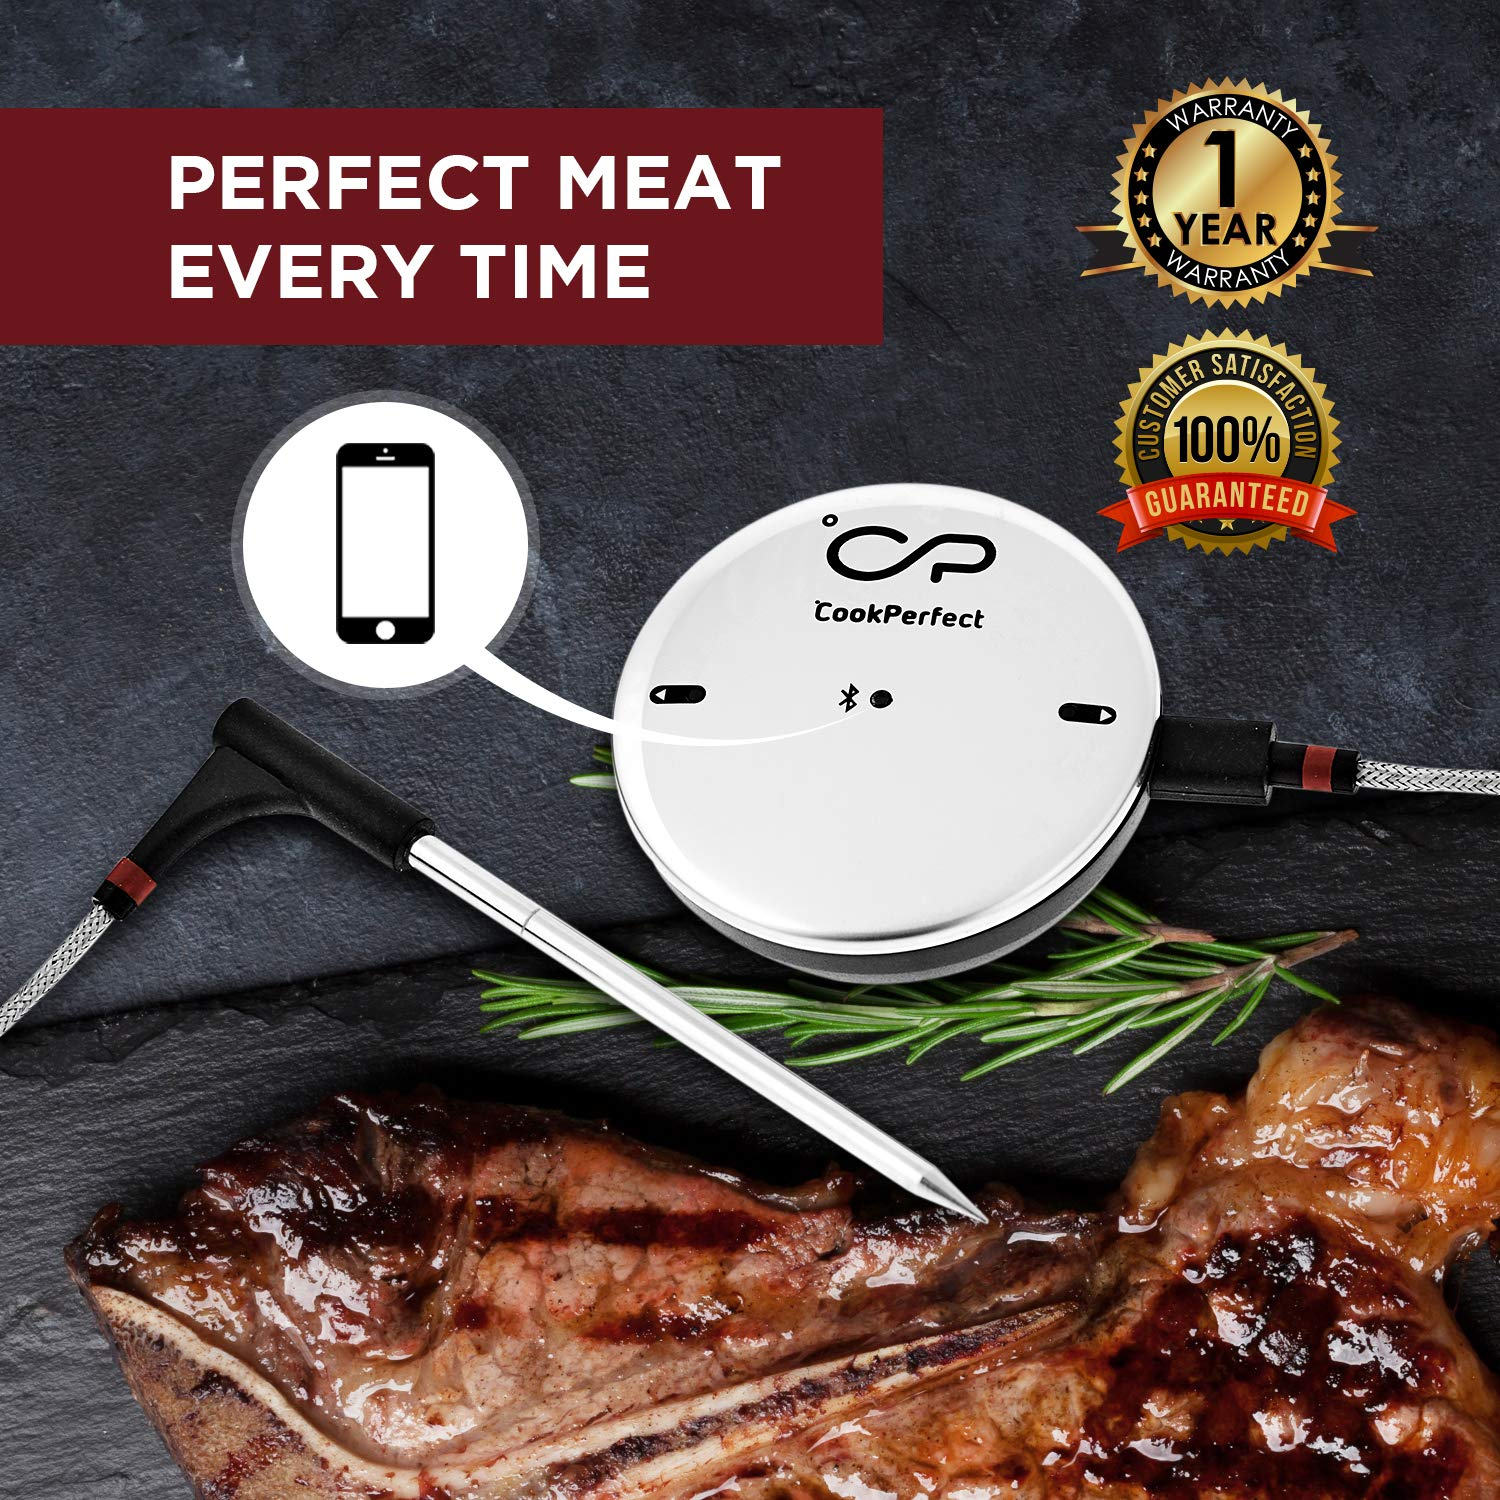 CookPerfect Wireless Meat Thermometer with 400ft Bluetooth Range | Automatic Core and Air Temperature Readings | for BBQ, Oven and Grill Cooking (1 Probe Included) by CookPerfect (Image #2)